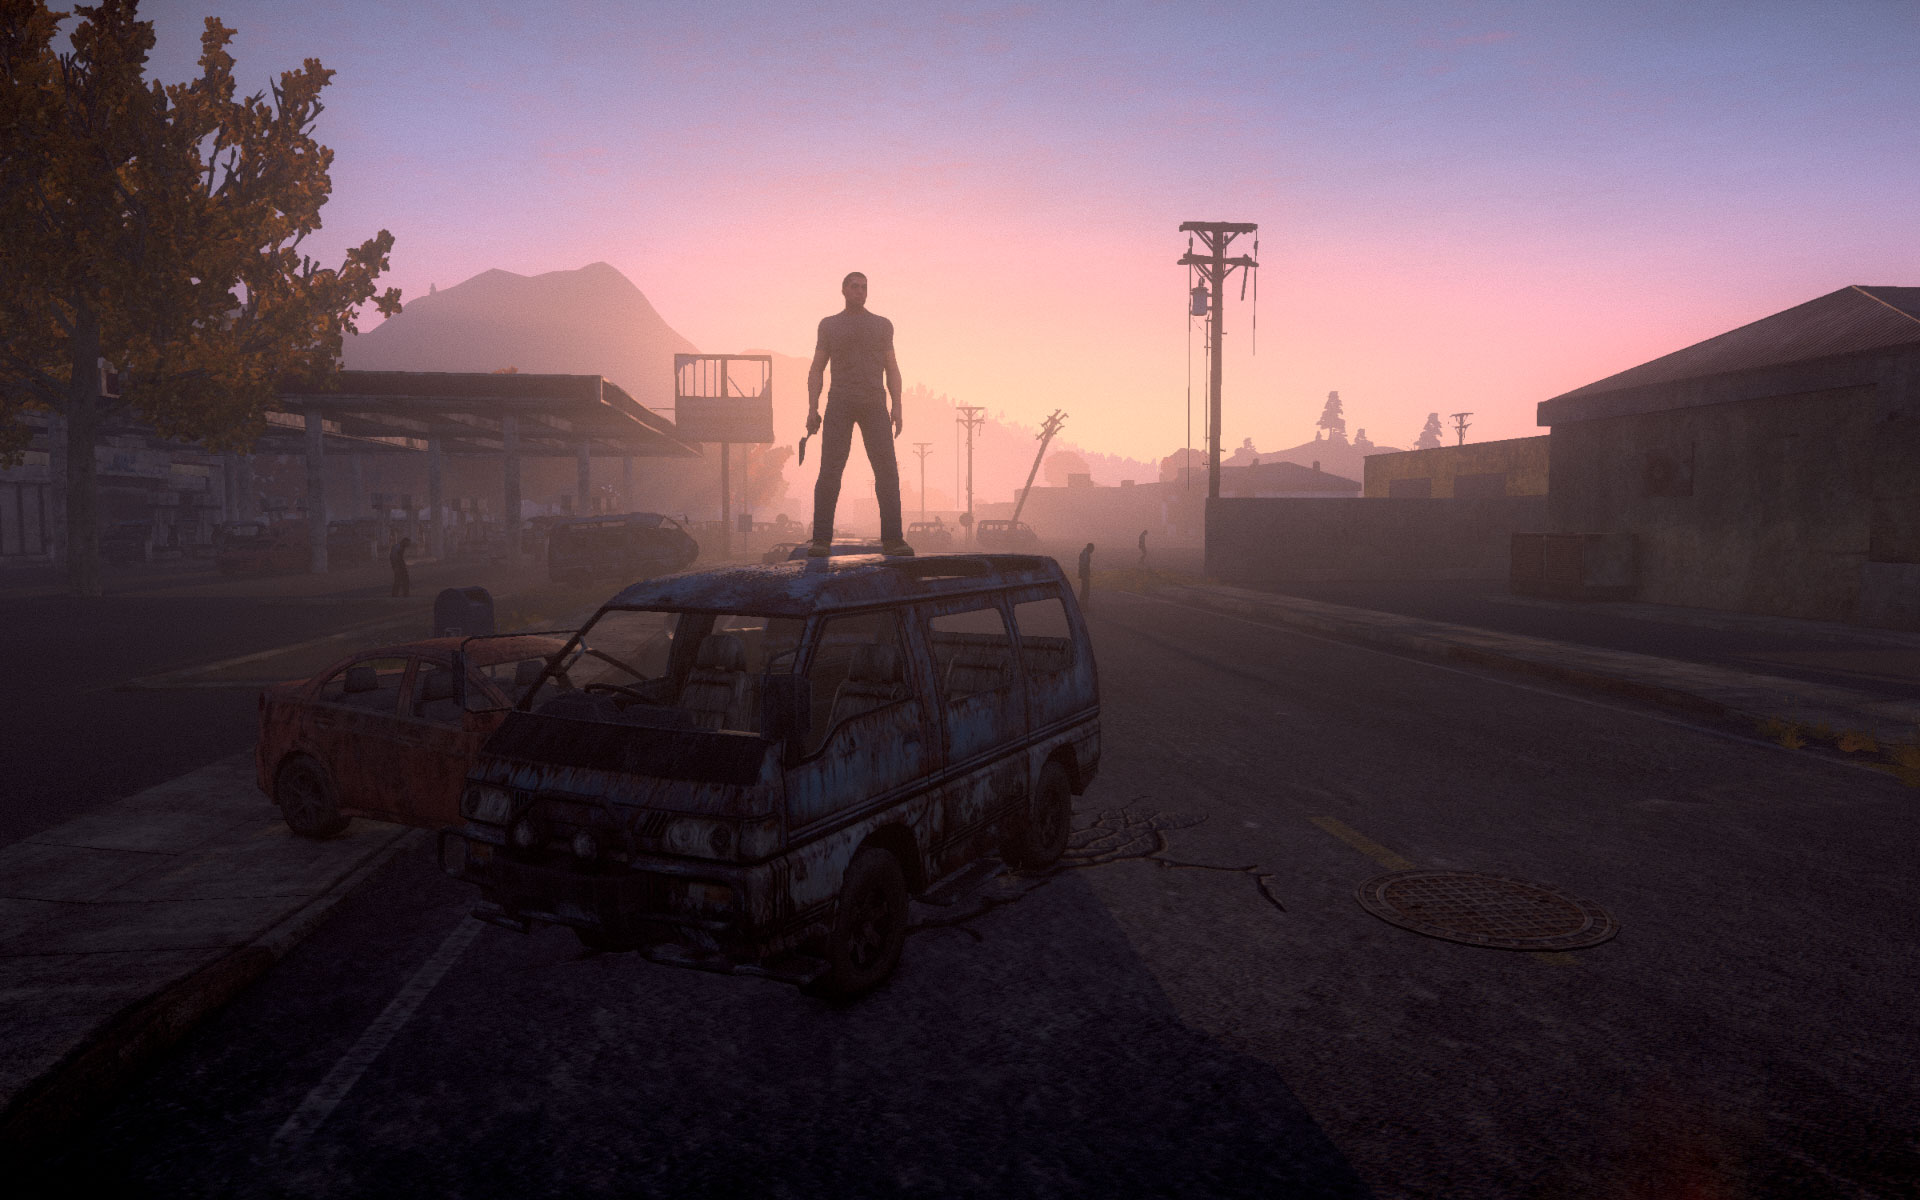 H1Z1 lets you loot items bought with real-world money